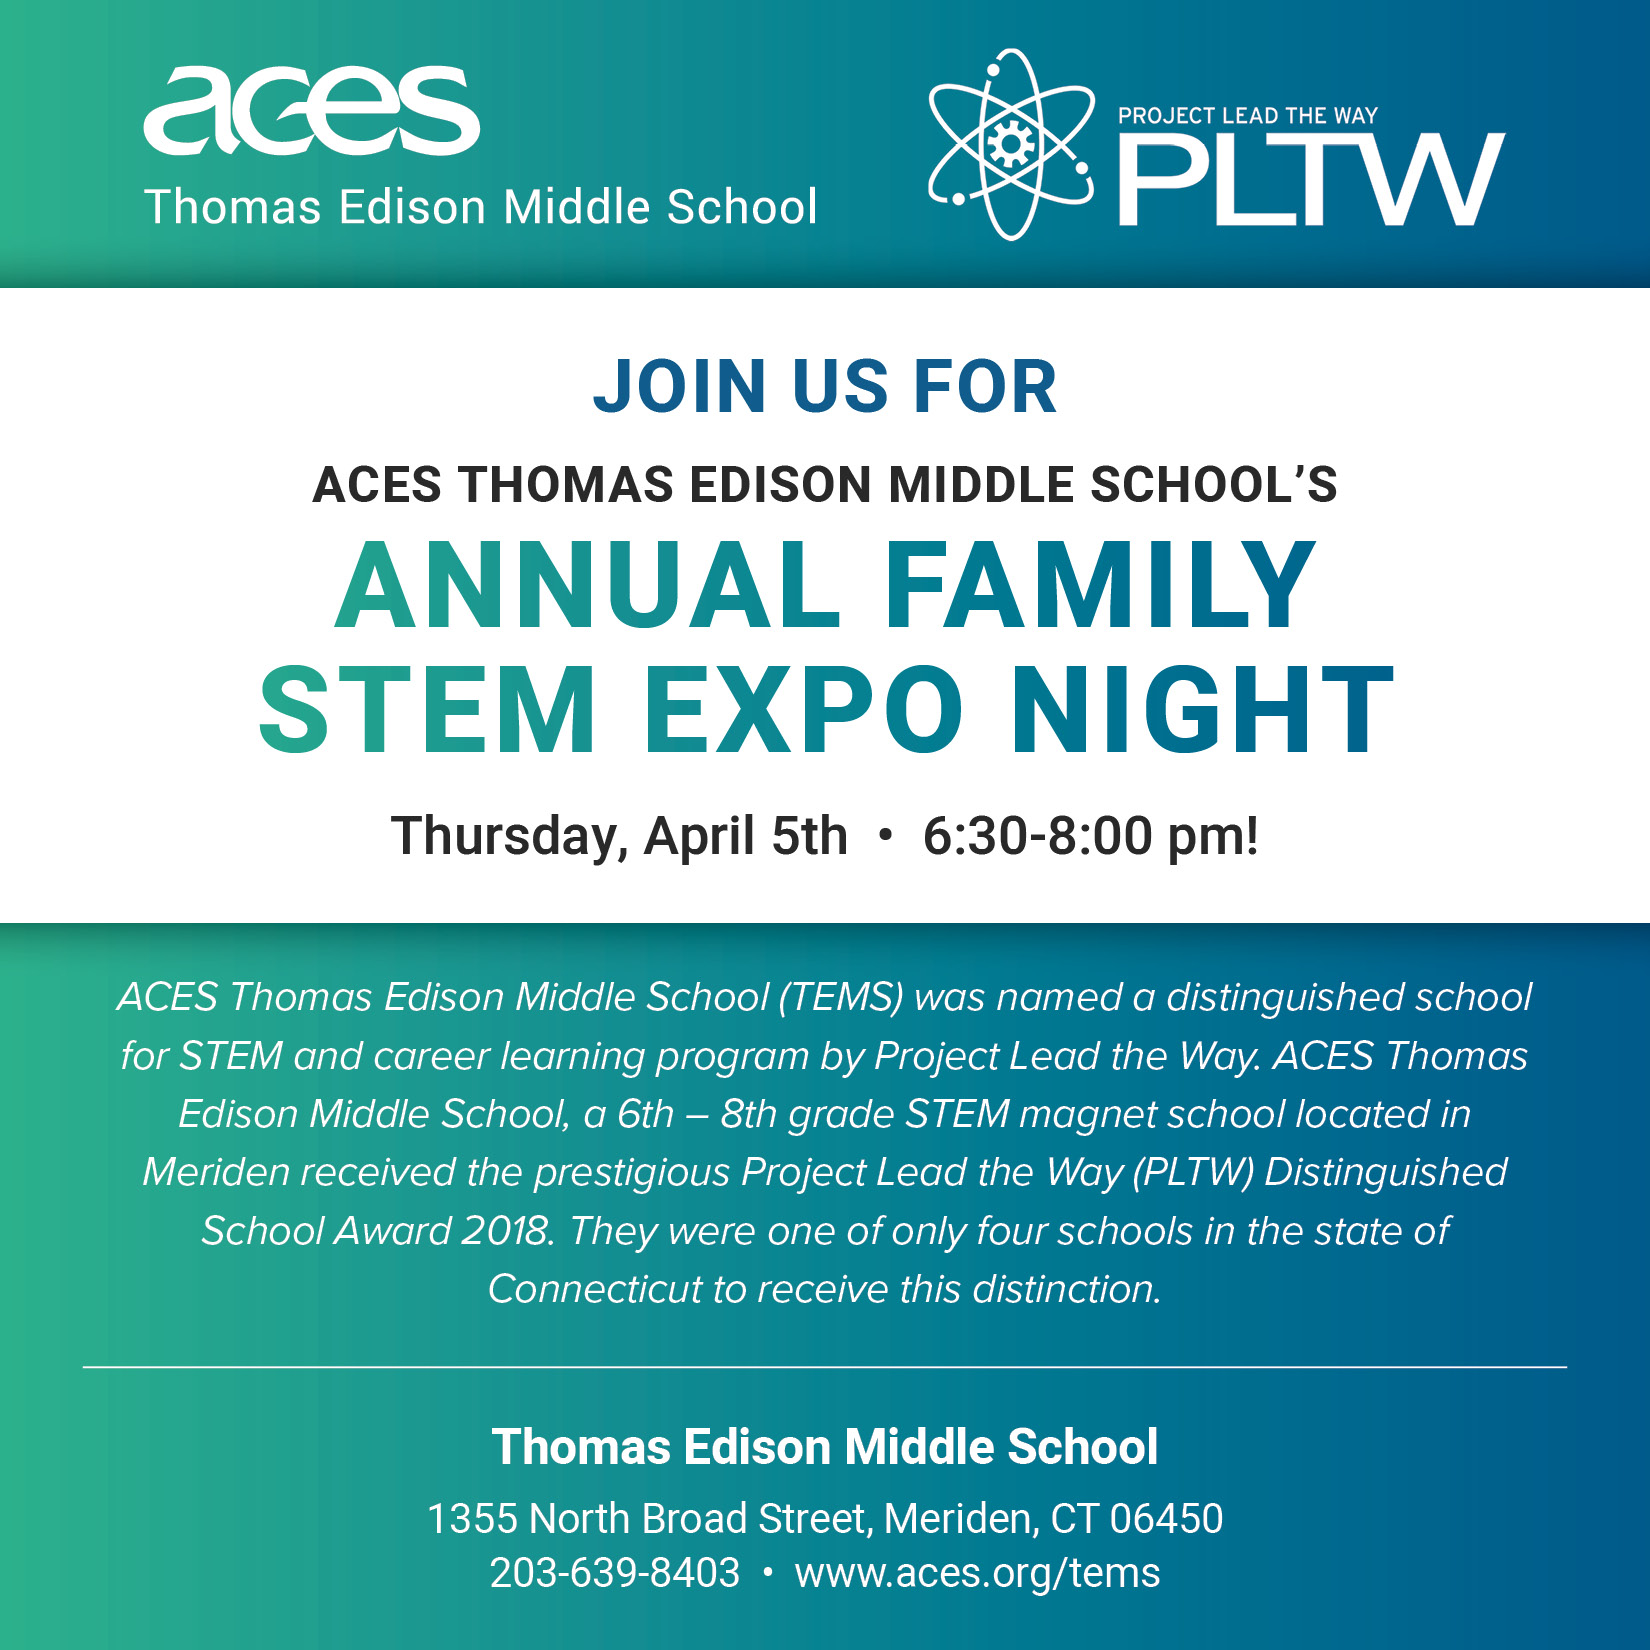 Thomas Edison Middle School Annual Family STEM Expo Night - ACES